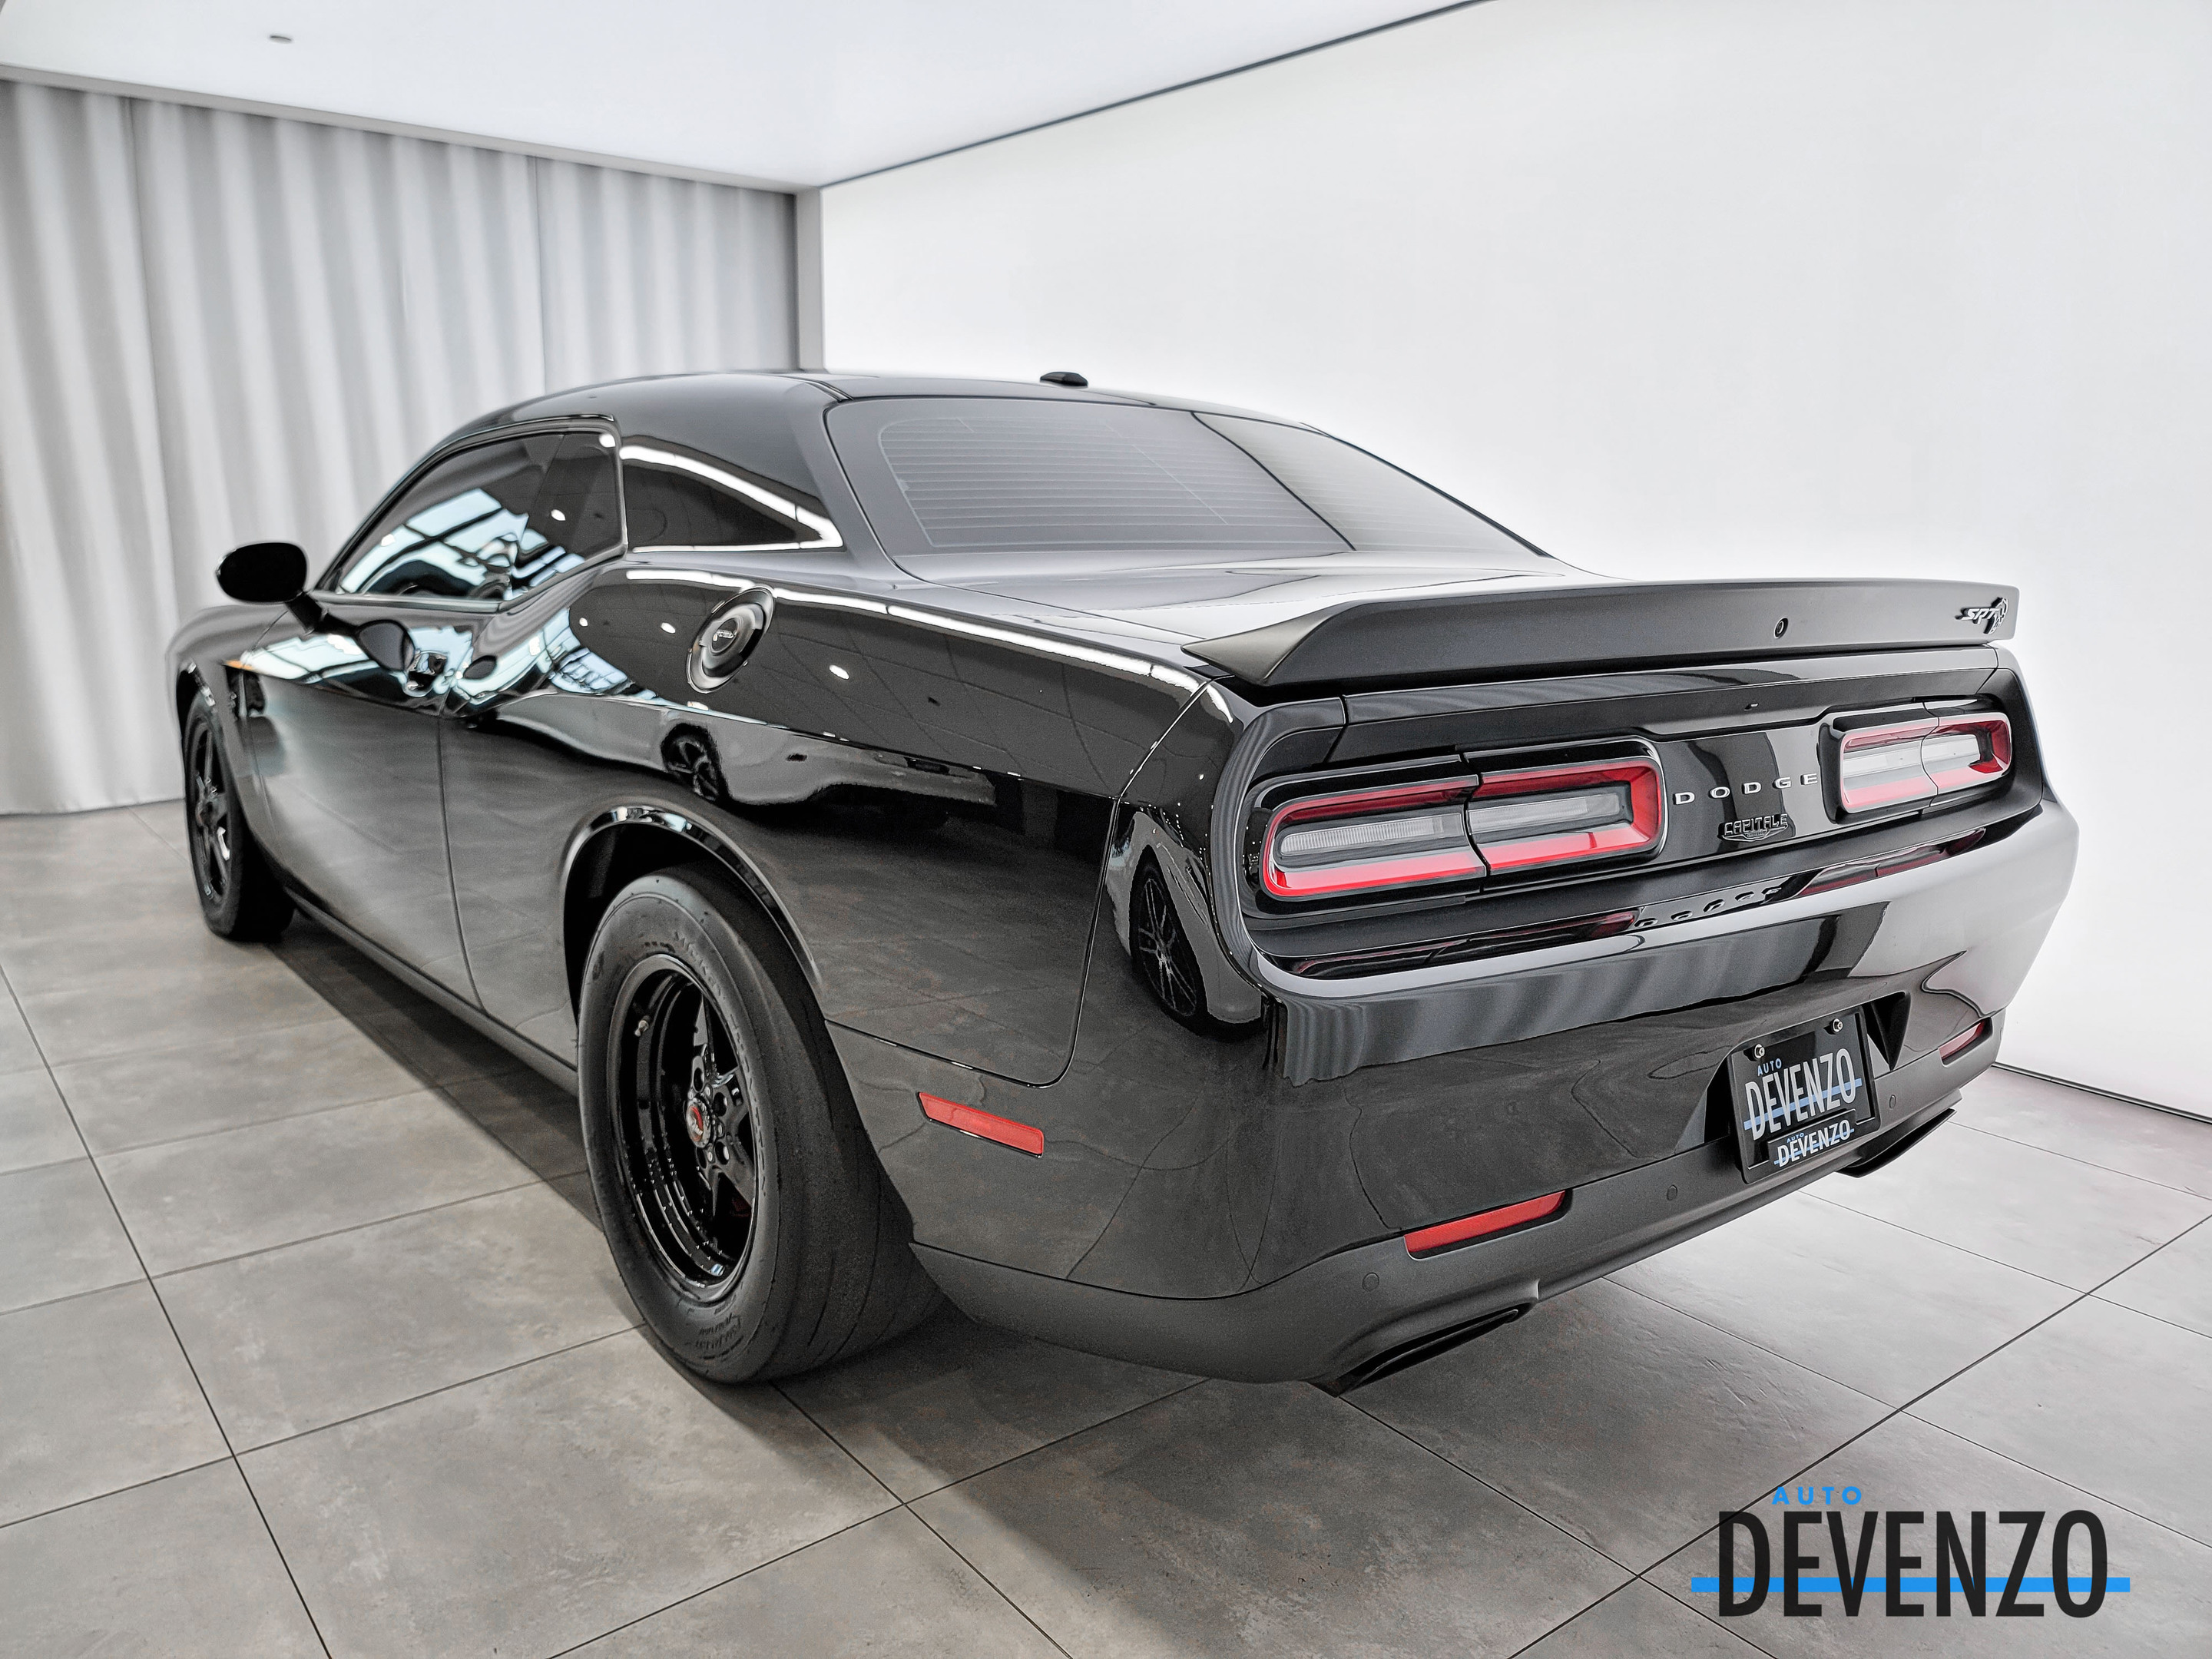 2017 Dodge Challenger SRT Hellcat SUPERCHARGED Whipple 1200hp complet